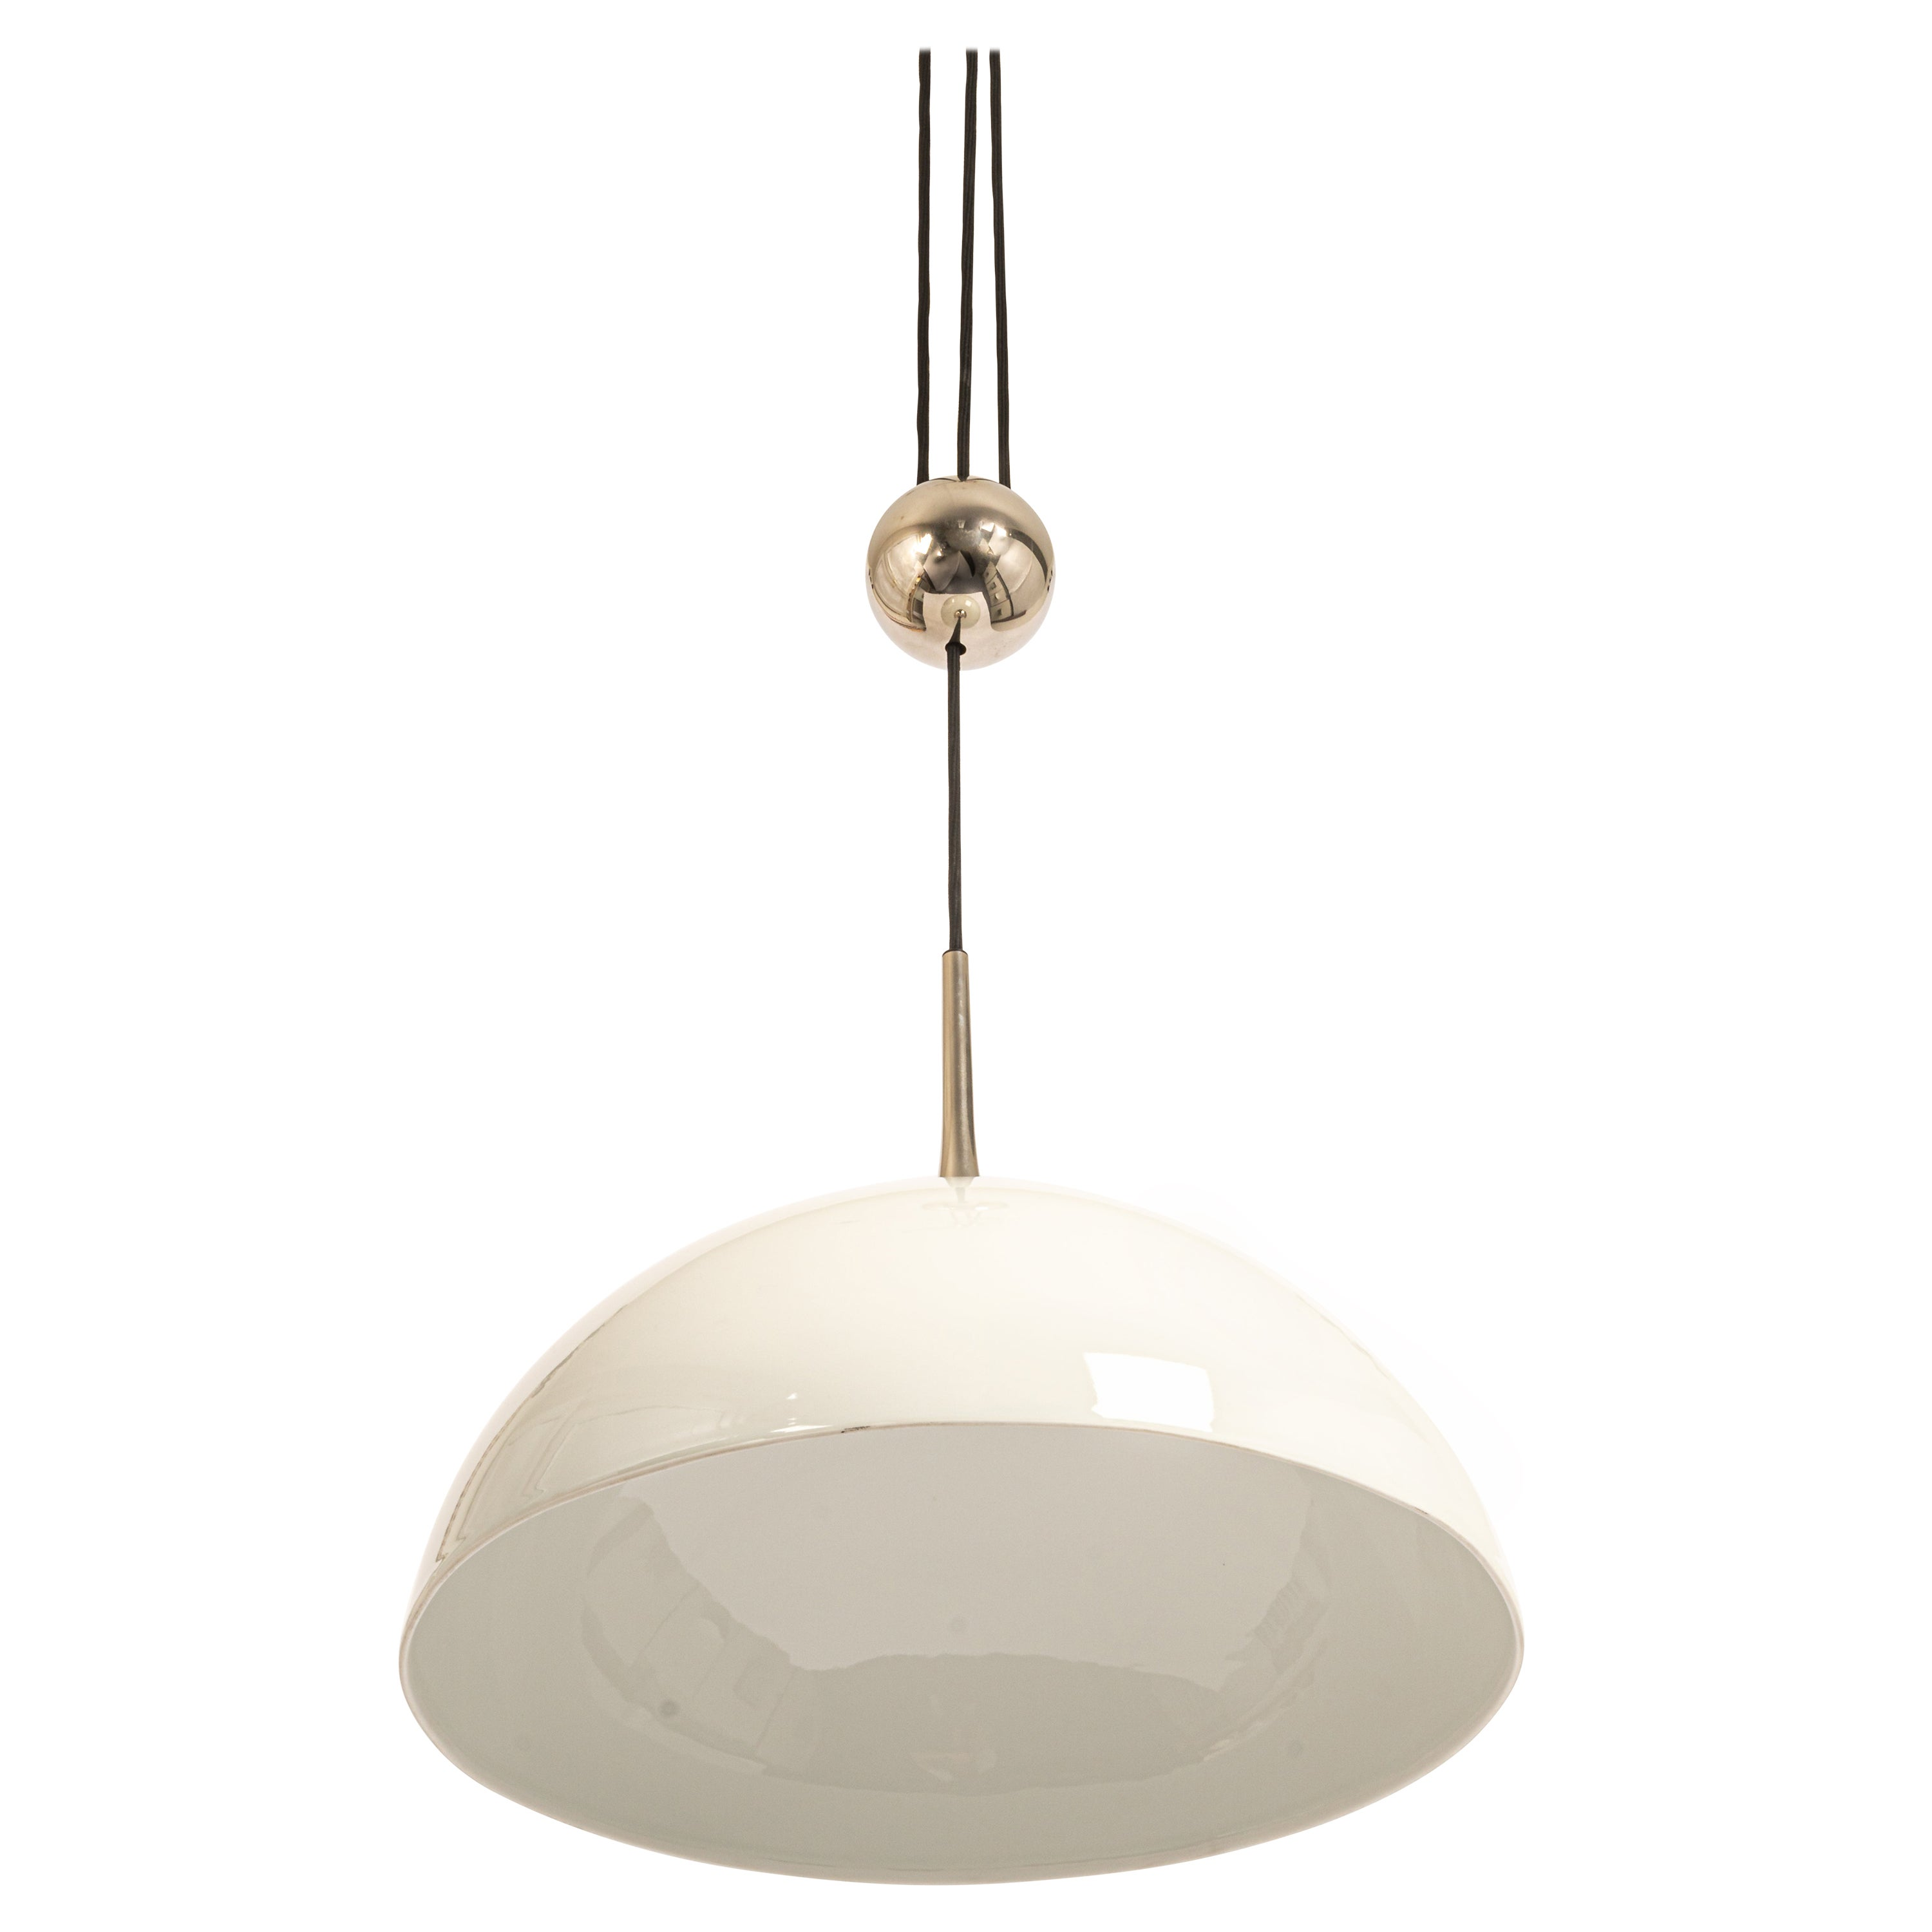 Large Adjustable Chrome Counterweight Pendant Light by Florian Schulz, Germany